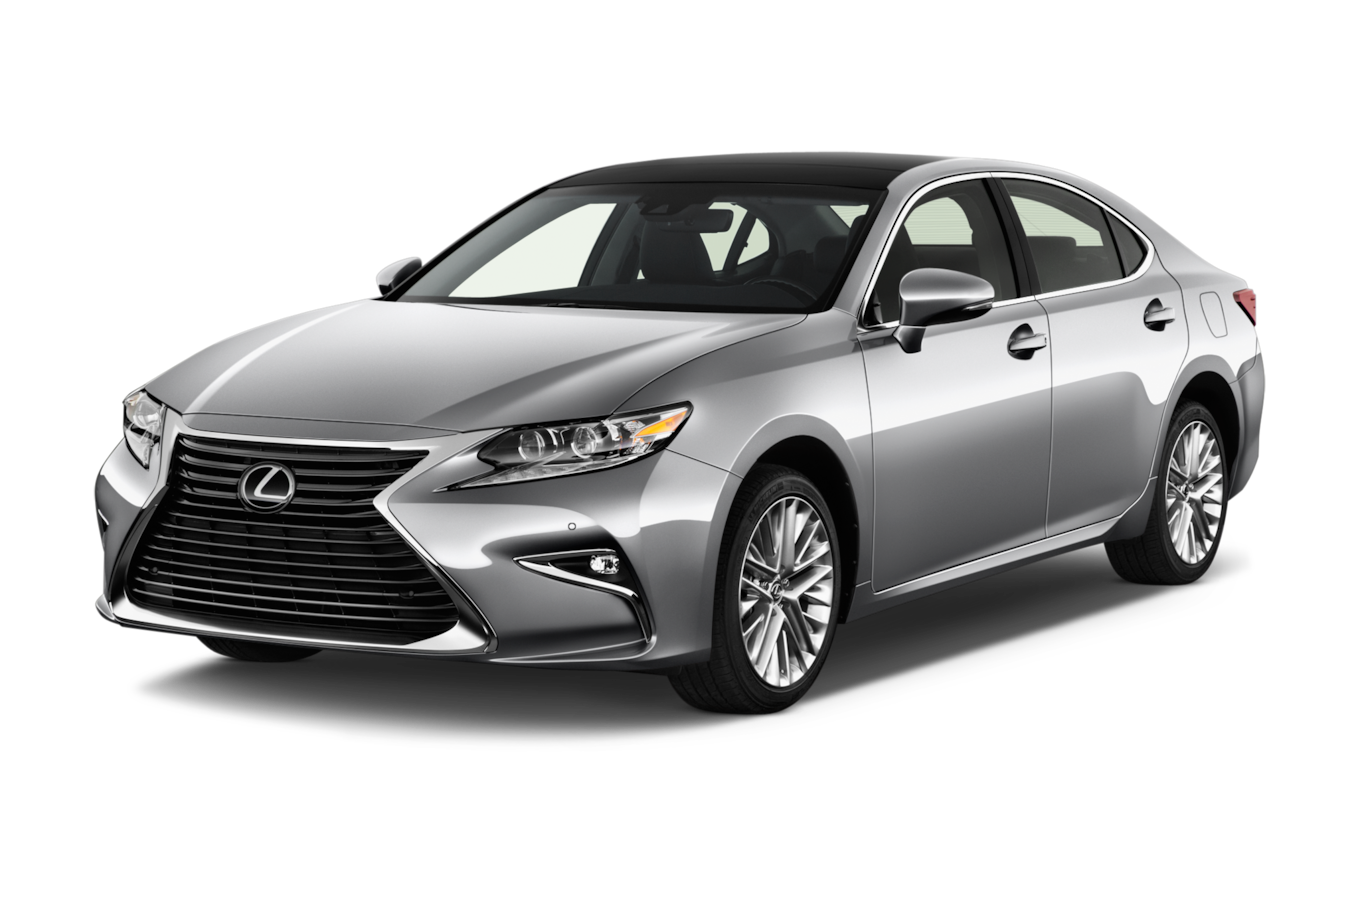 2017 Lexus ES350 Reviews and Rating